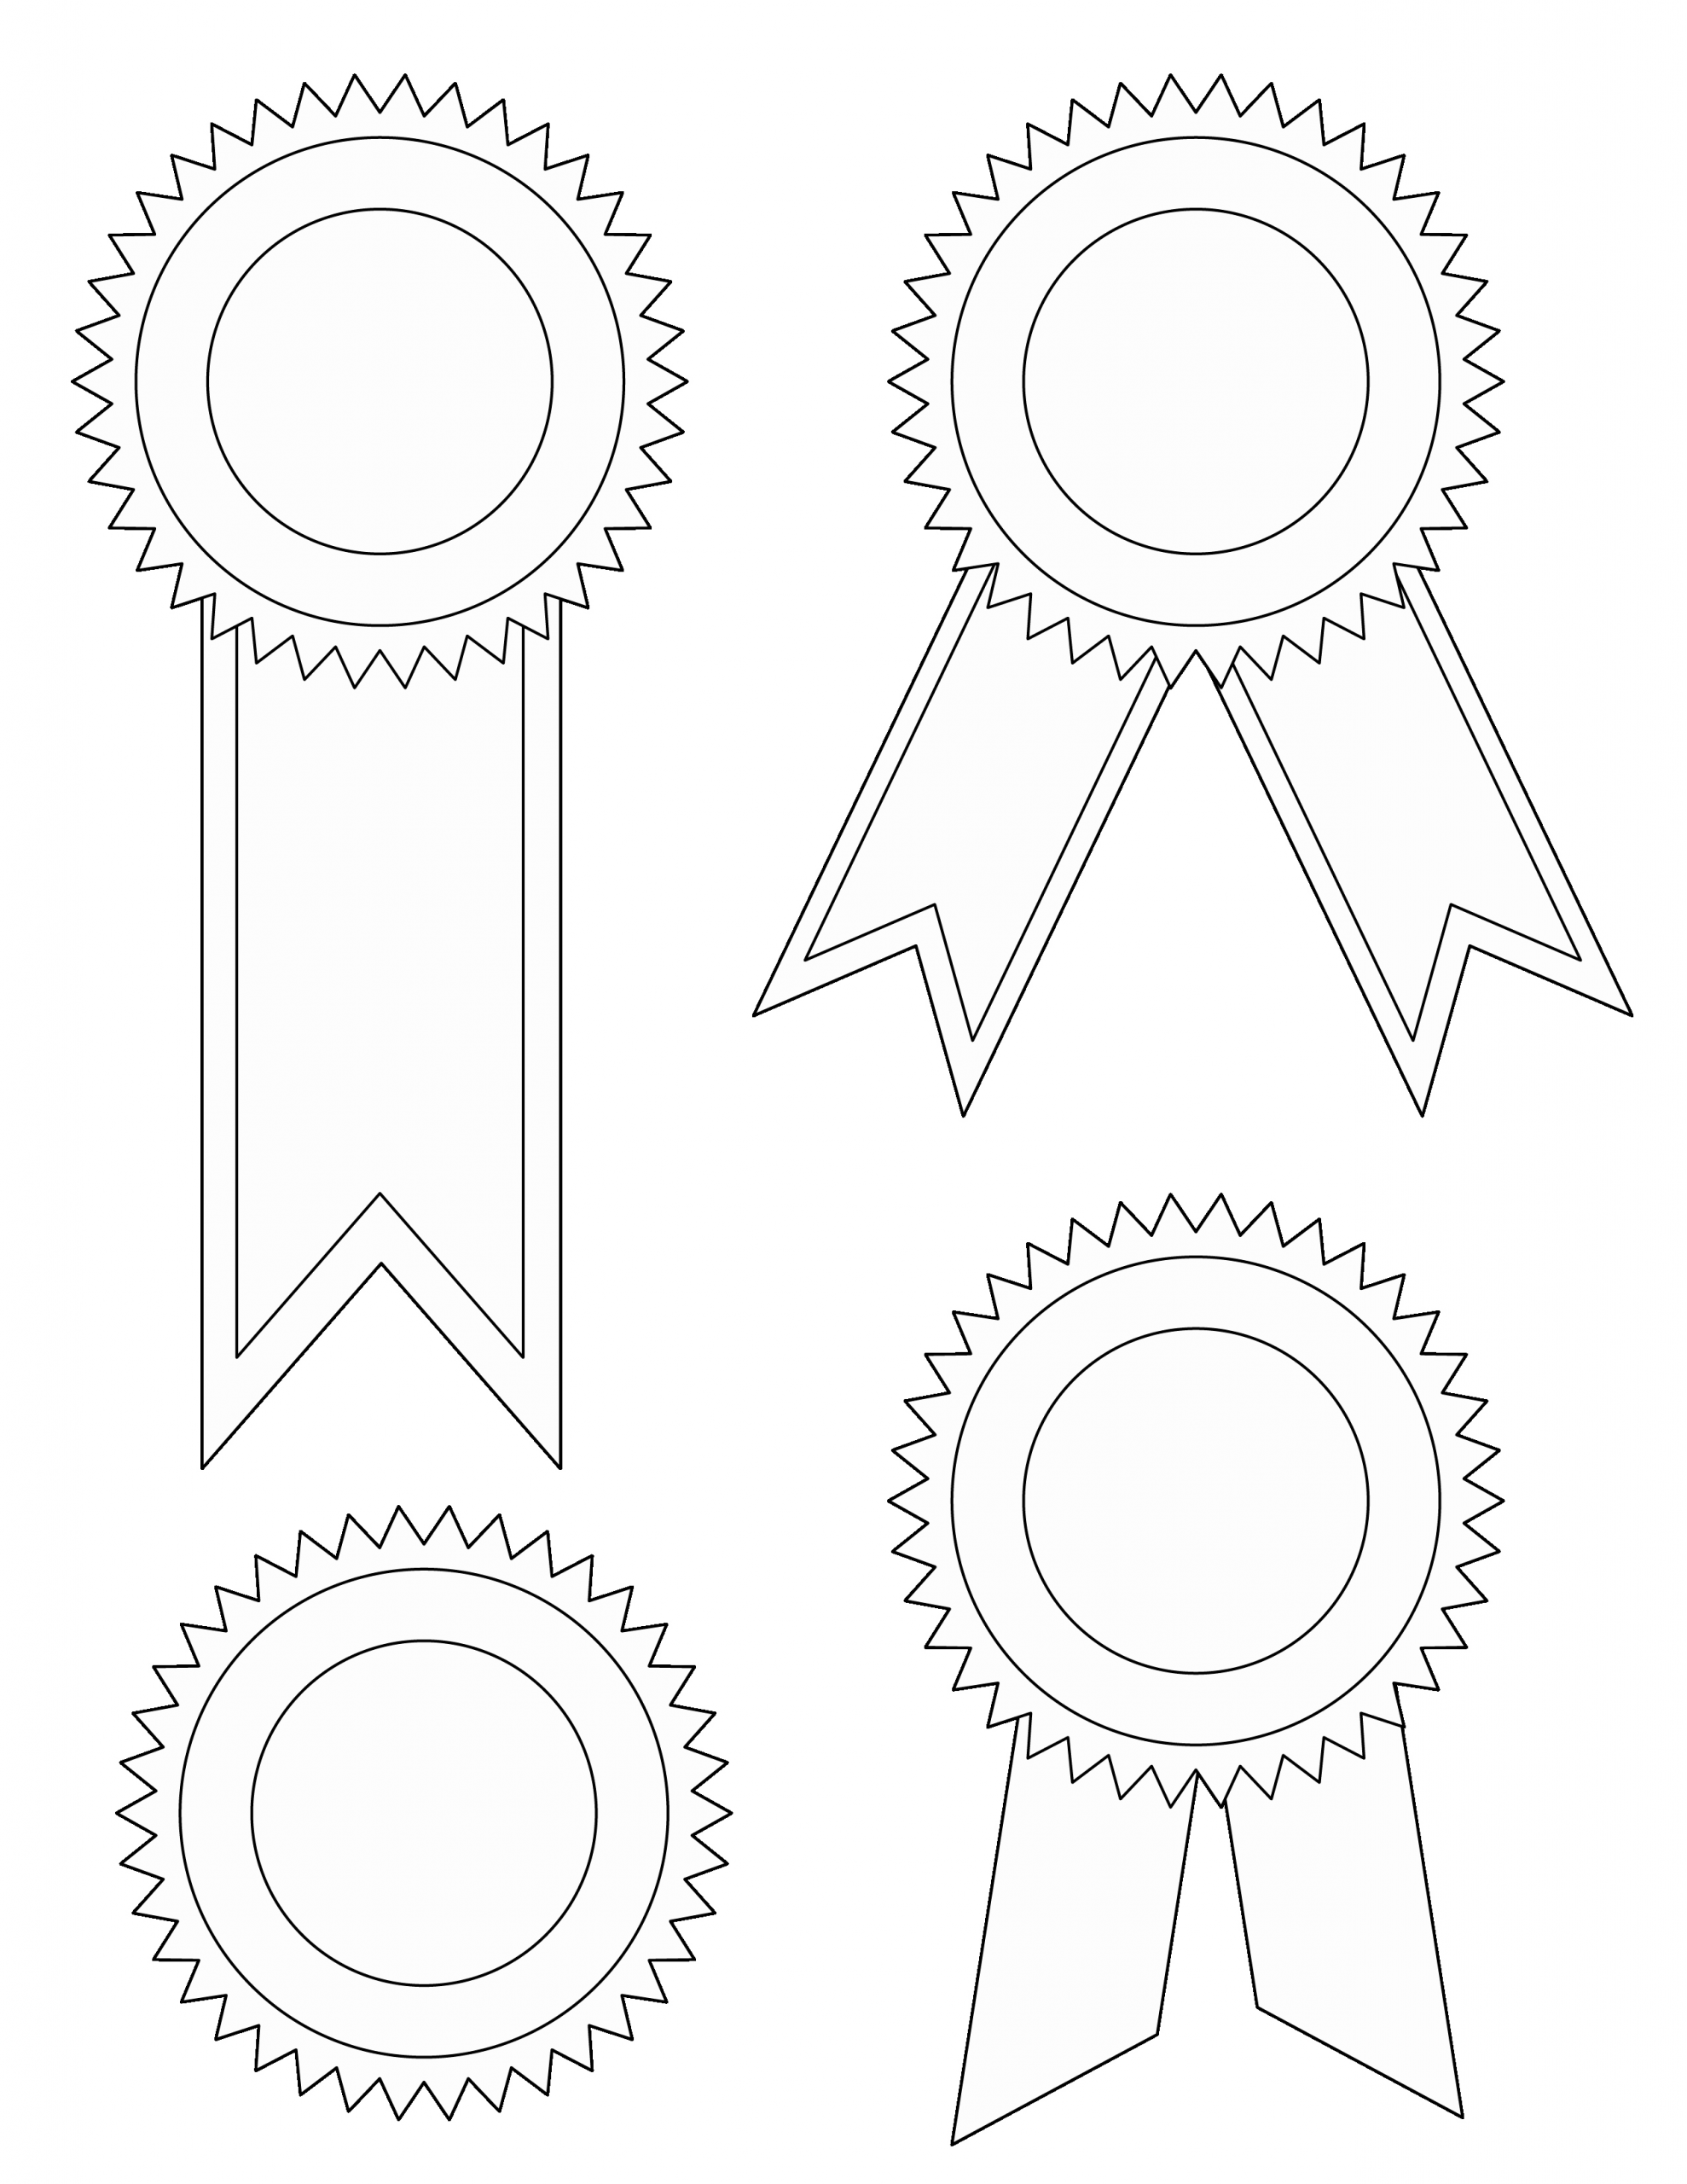 2nd Place Ribbon Png Awesome Free Ribbon Template Download Free Clip Art Free Clip